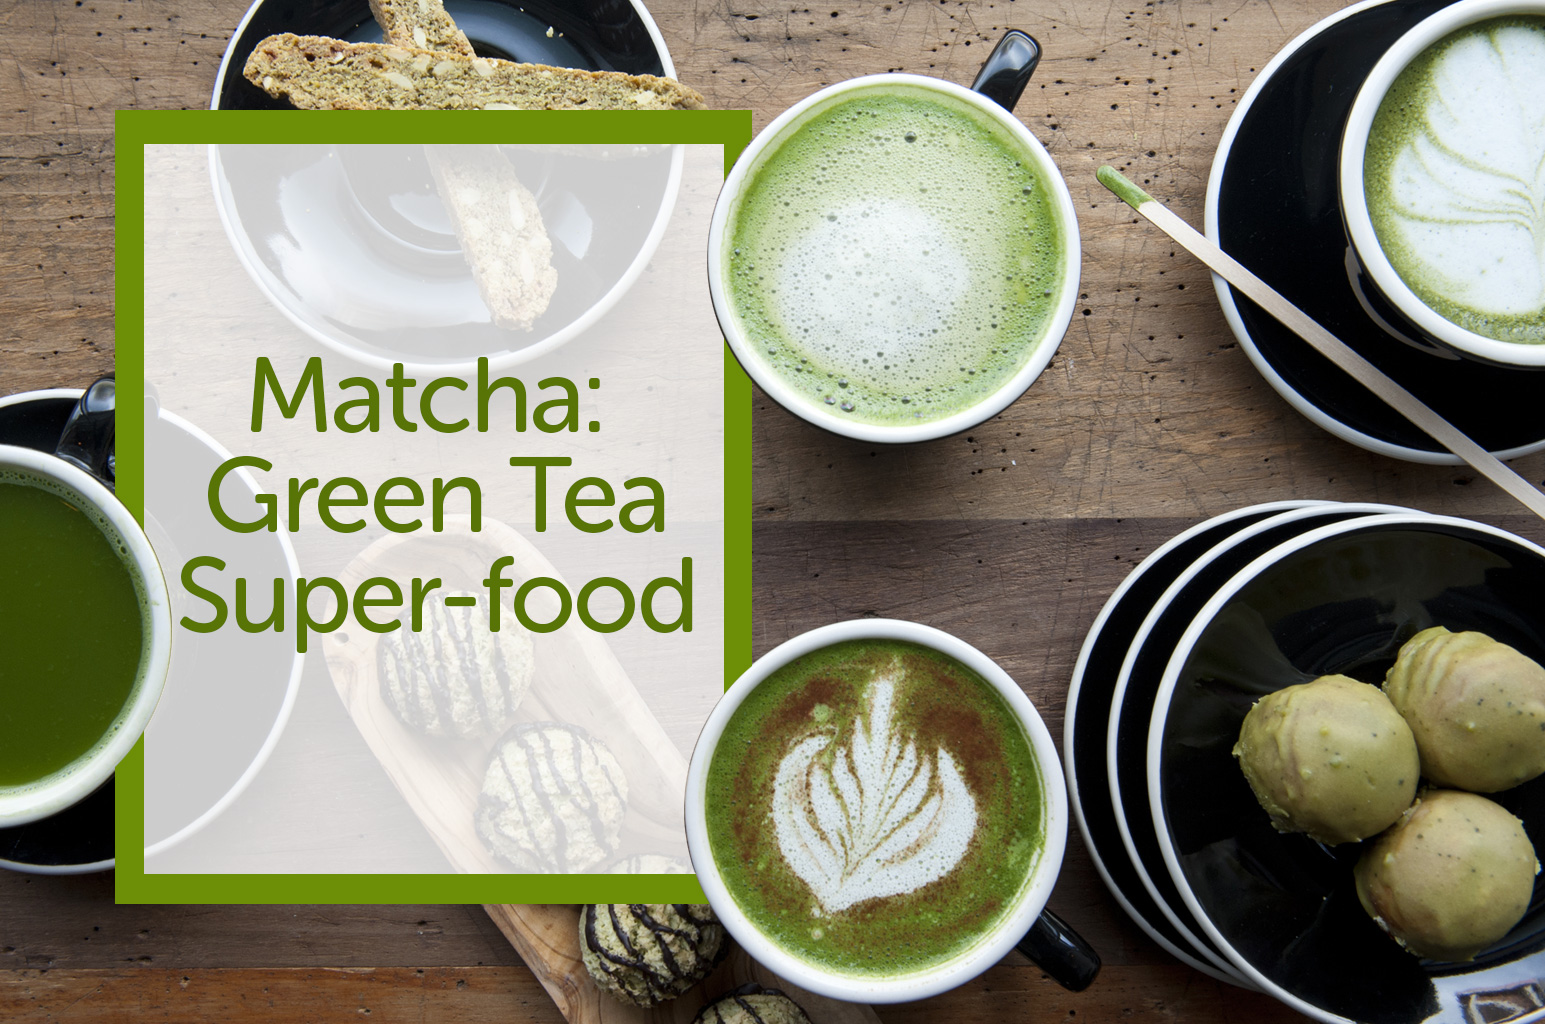 Matcha: The Green Tea Super-food